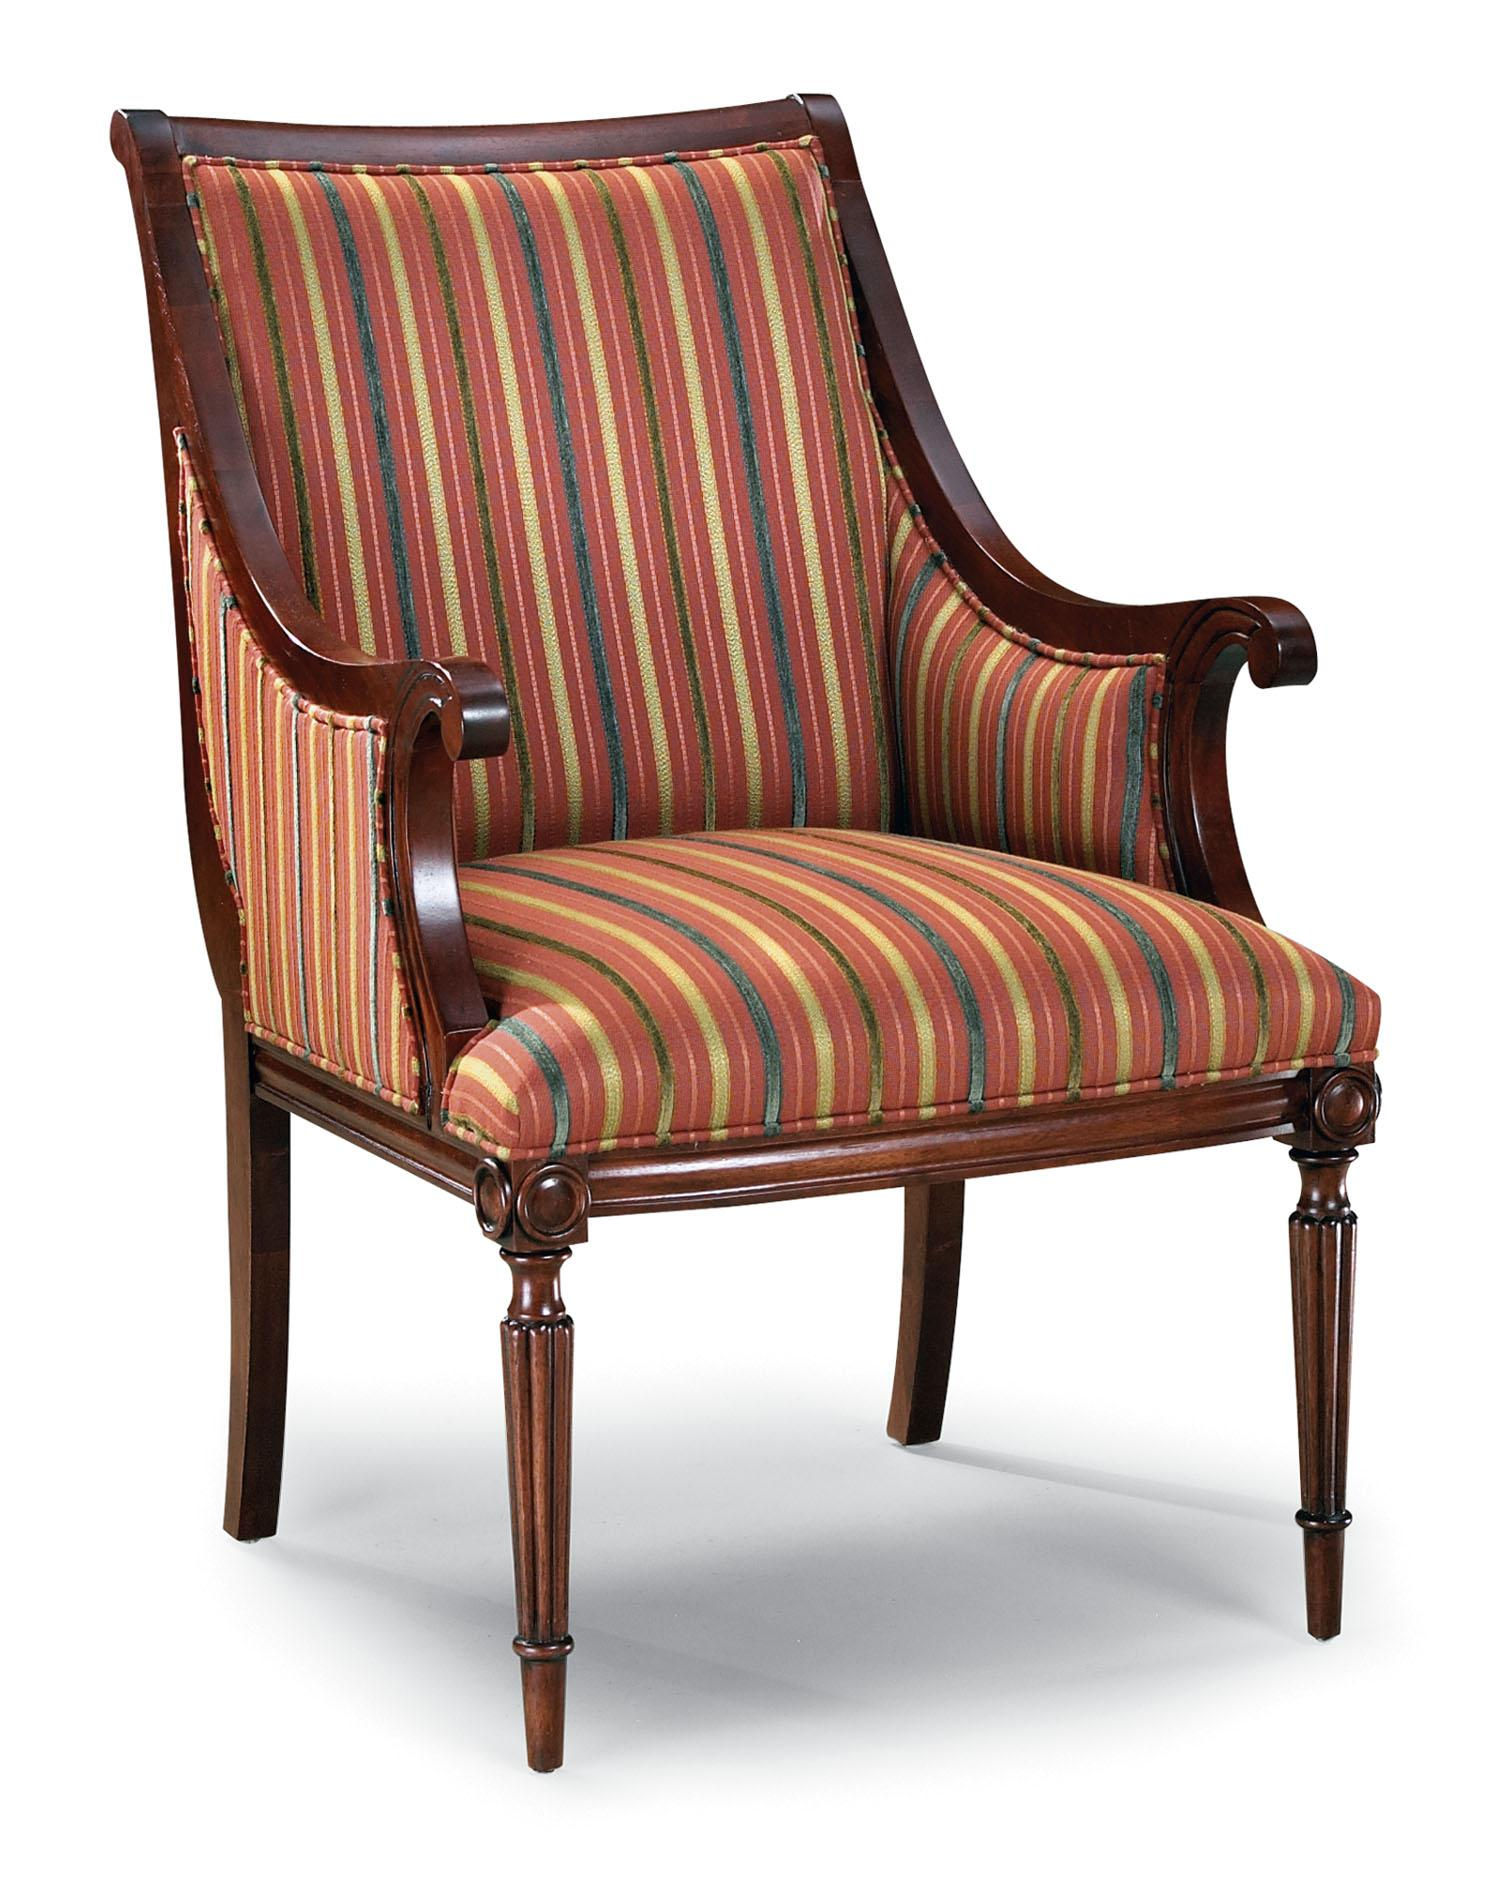 Sofa Mart Accent Chairs: Fairfield Chairs Exposed Wood Upholstered Accent Chair